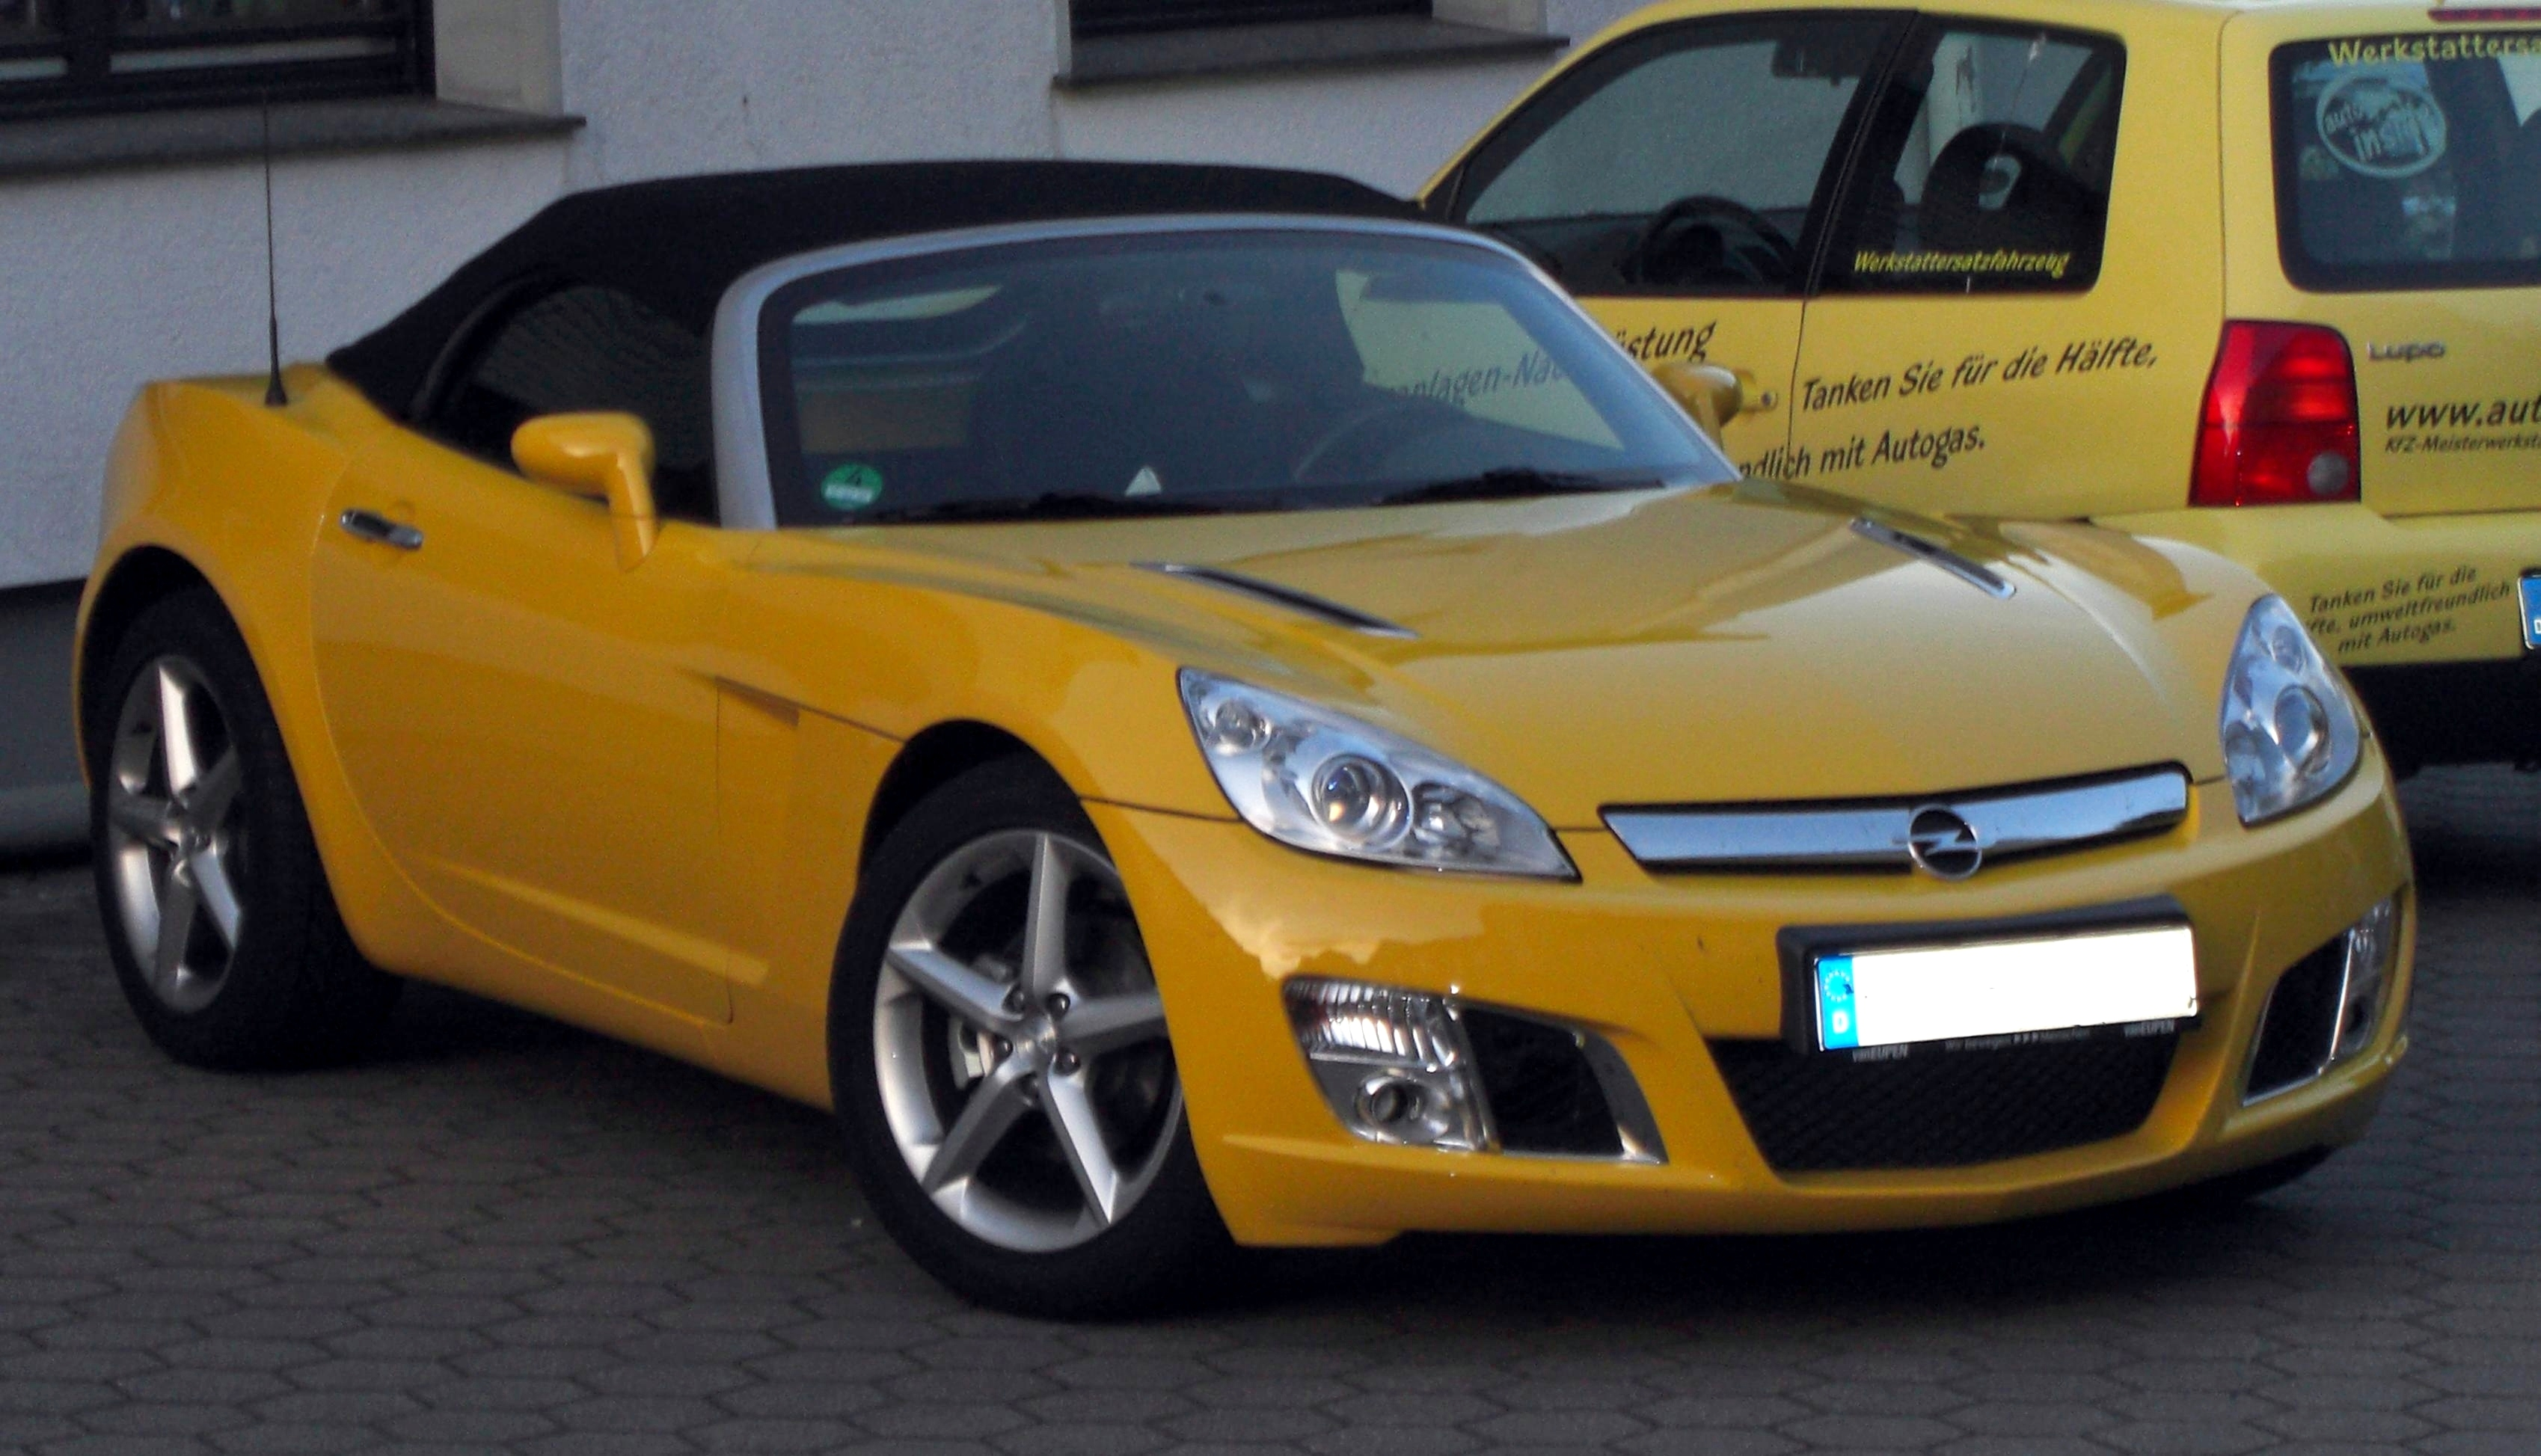 File:Opel GT Roadster front.jpg - Wikimedia Commons